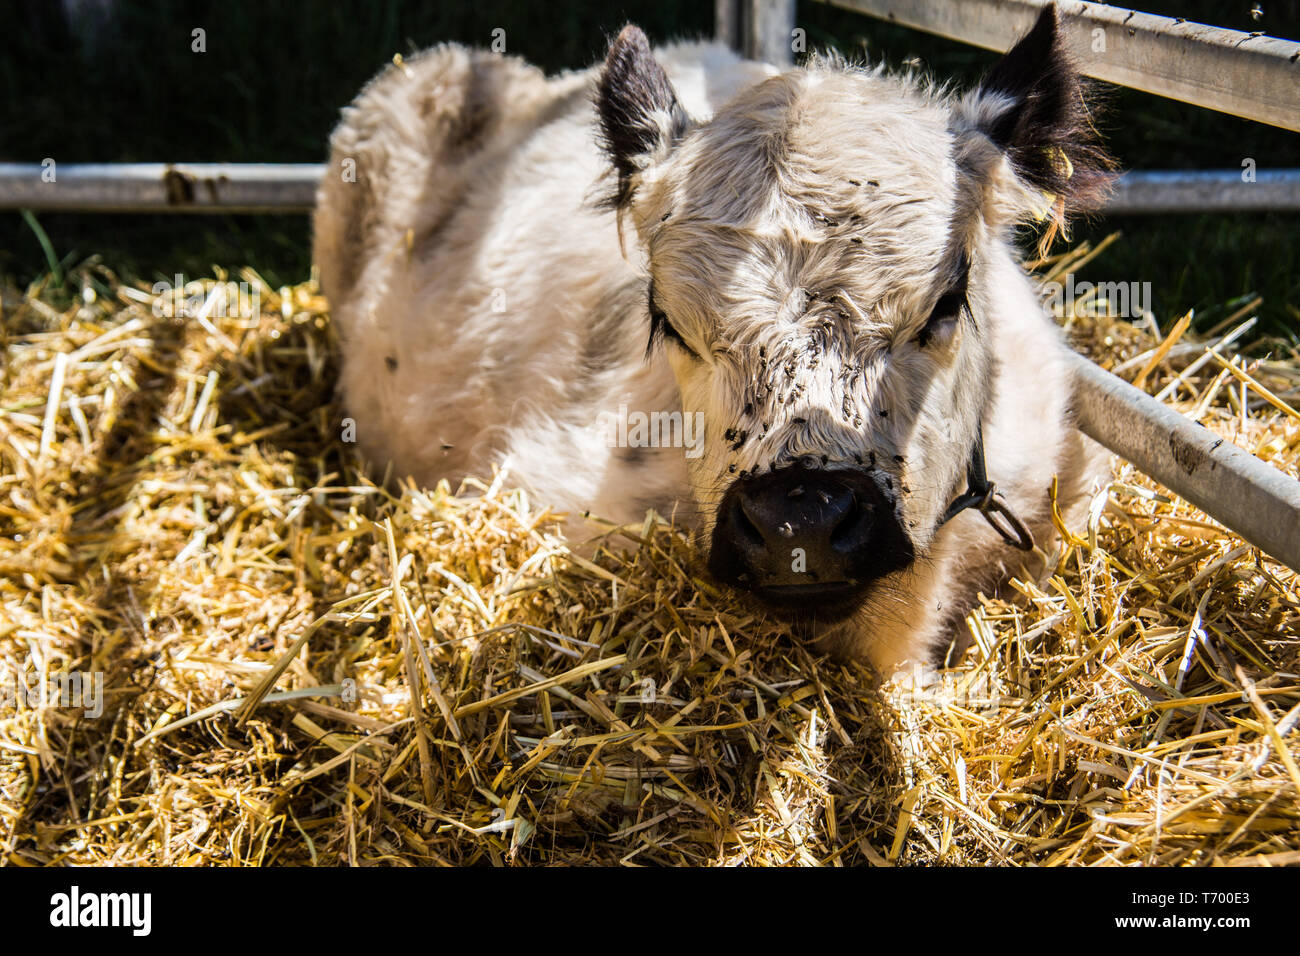 Cows in the stables - Stock Image